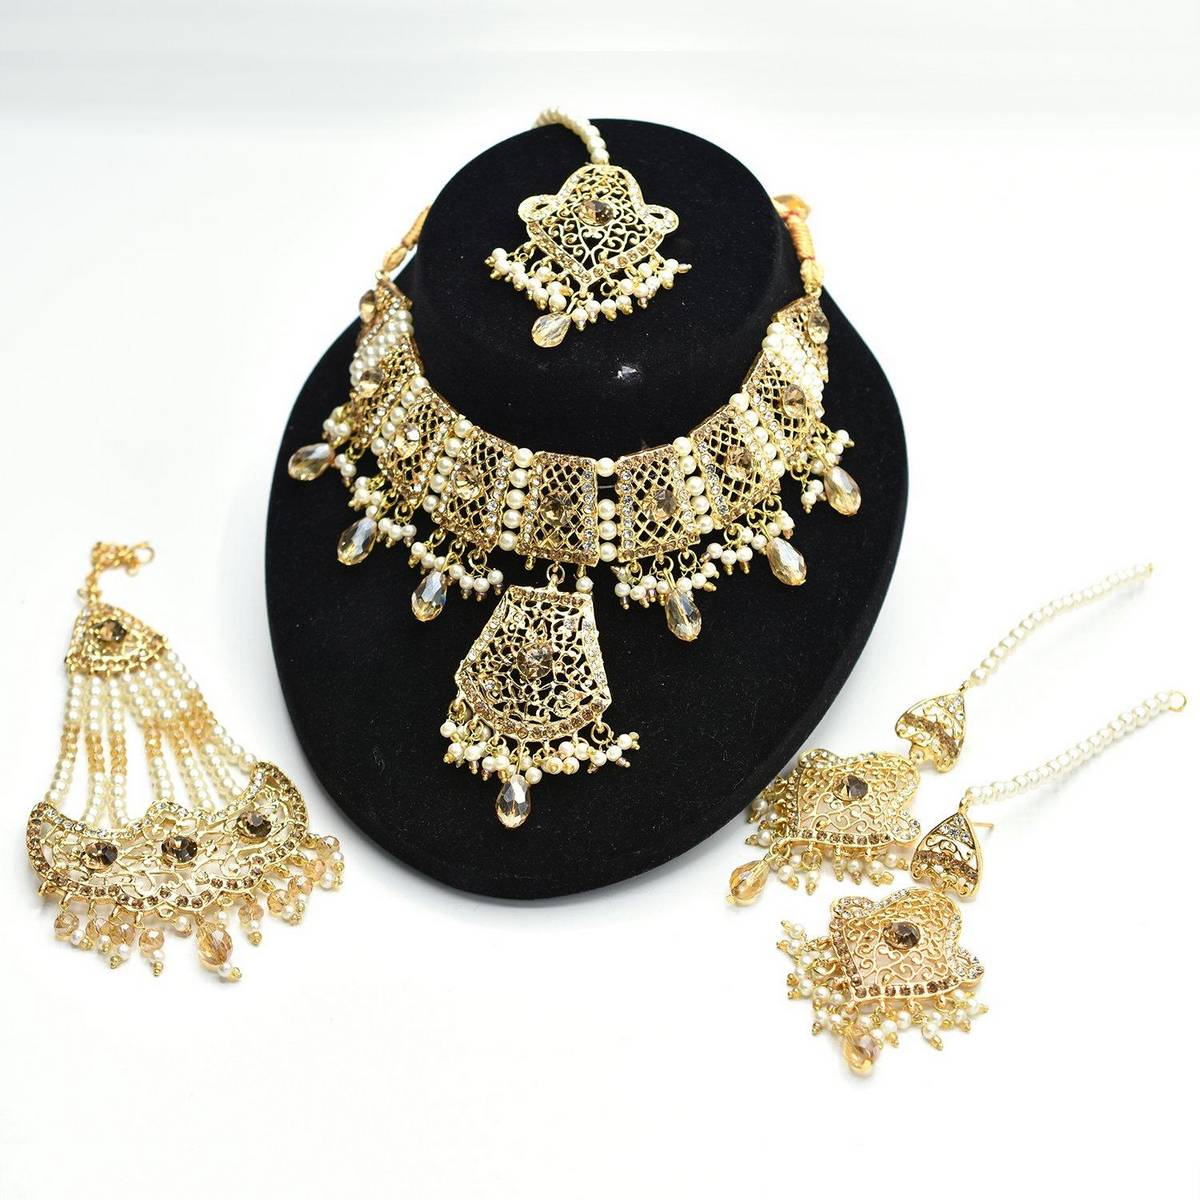 Fancy bridal Fashion set of necklace, earrings and tika jhumar